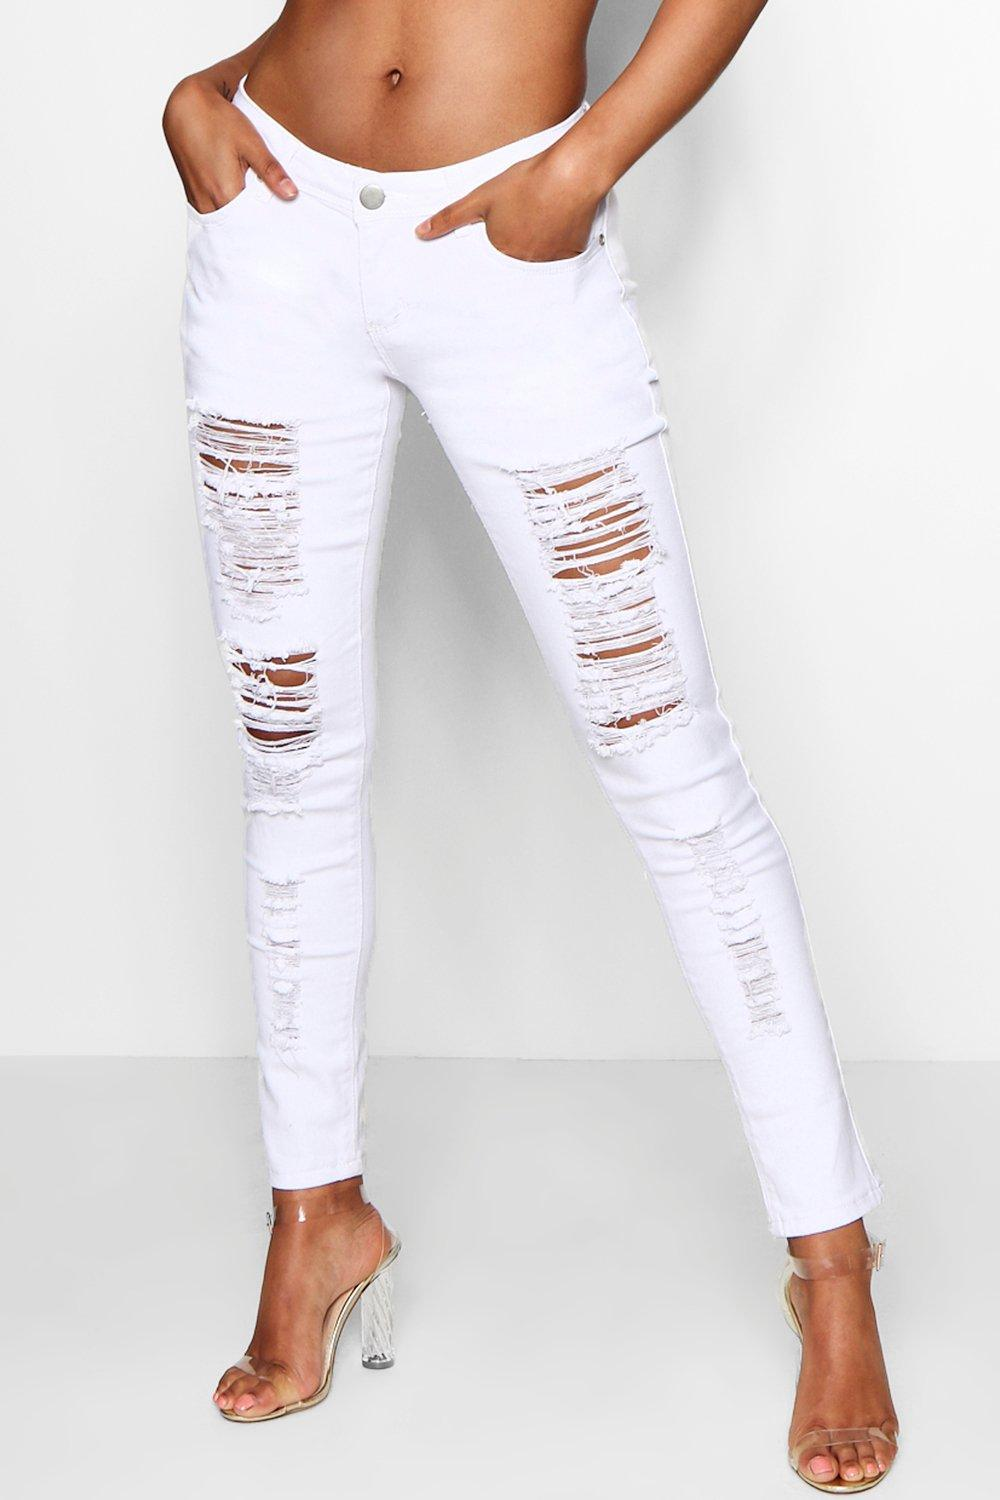 Carly White Ripped Jeans